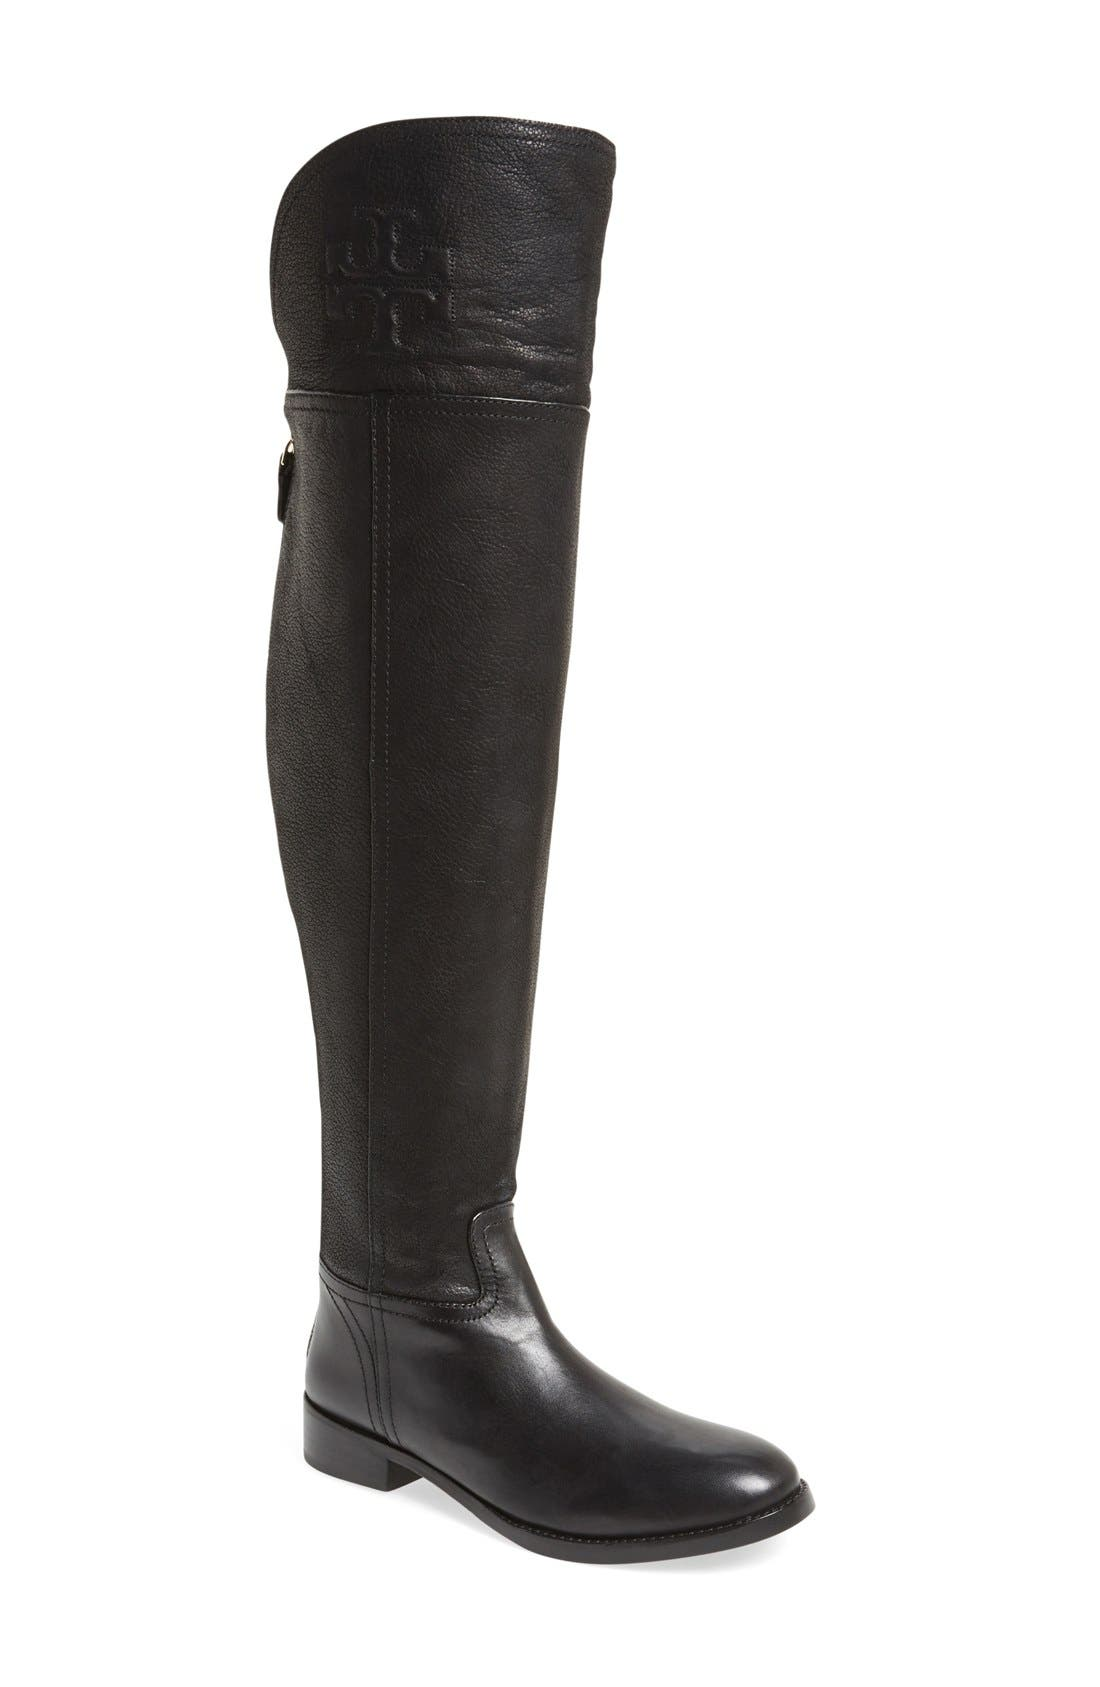 'Simone' Over the Knee Boot, Main, color, 001